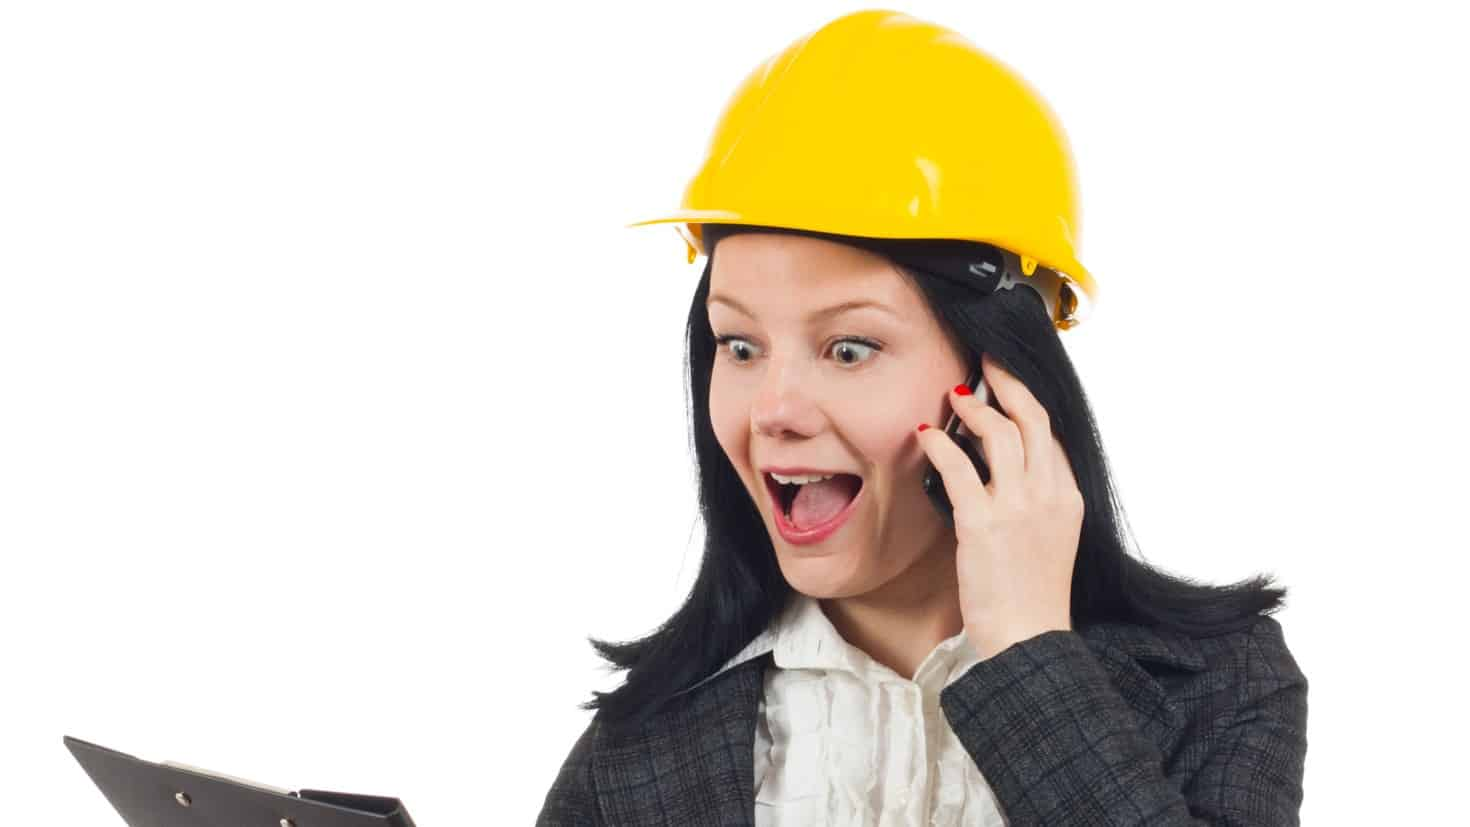 asx share price rise represented by woman in hard hat on phone looking excited